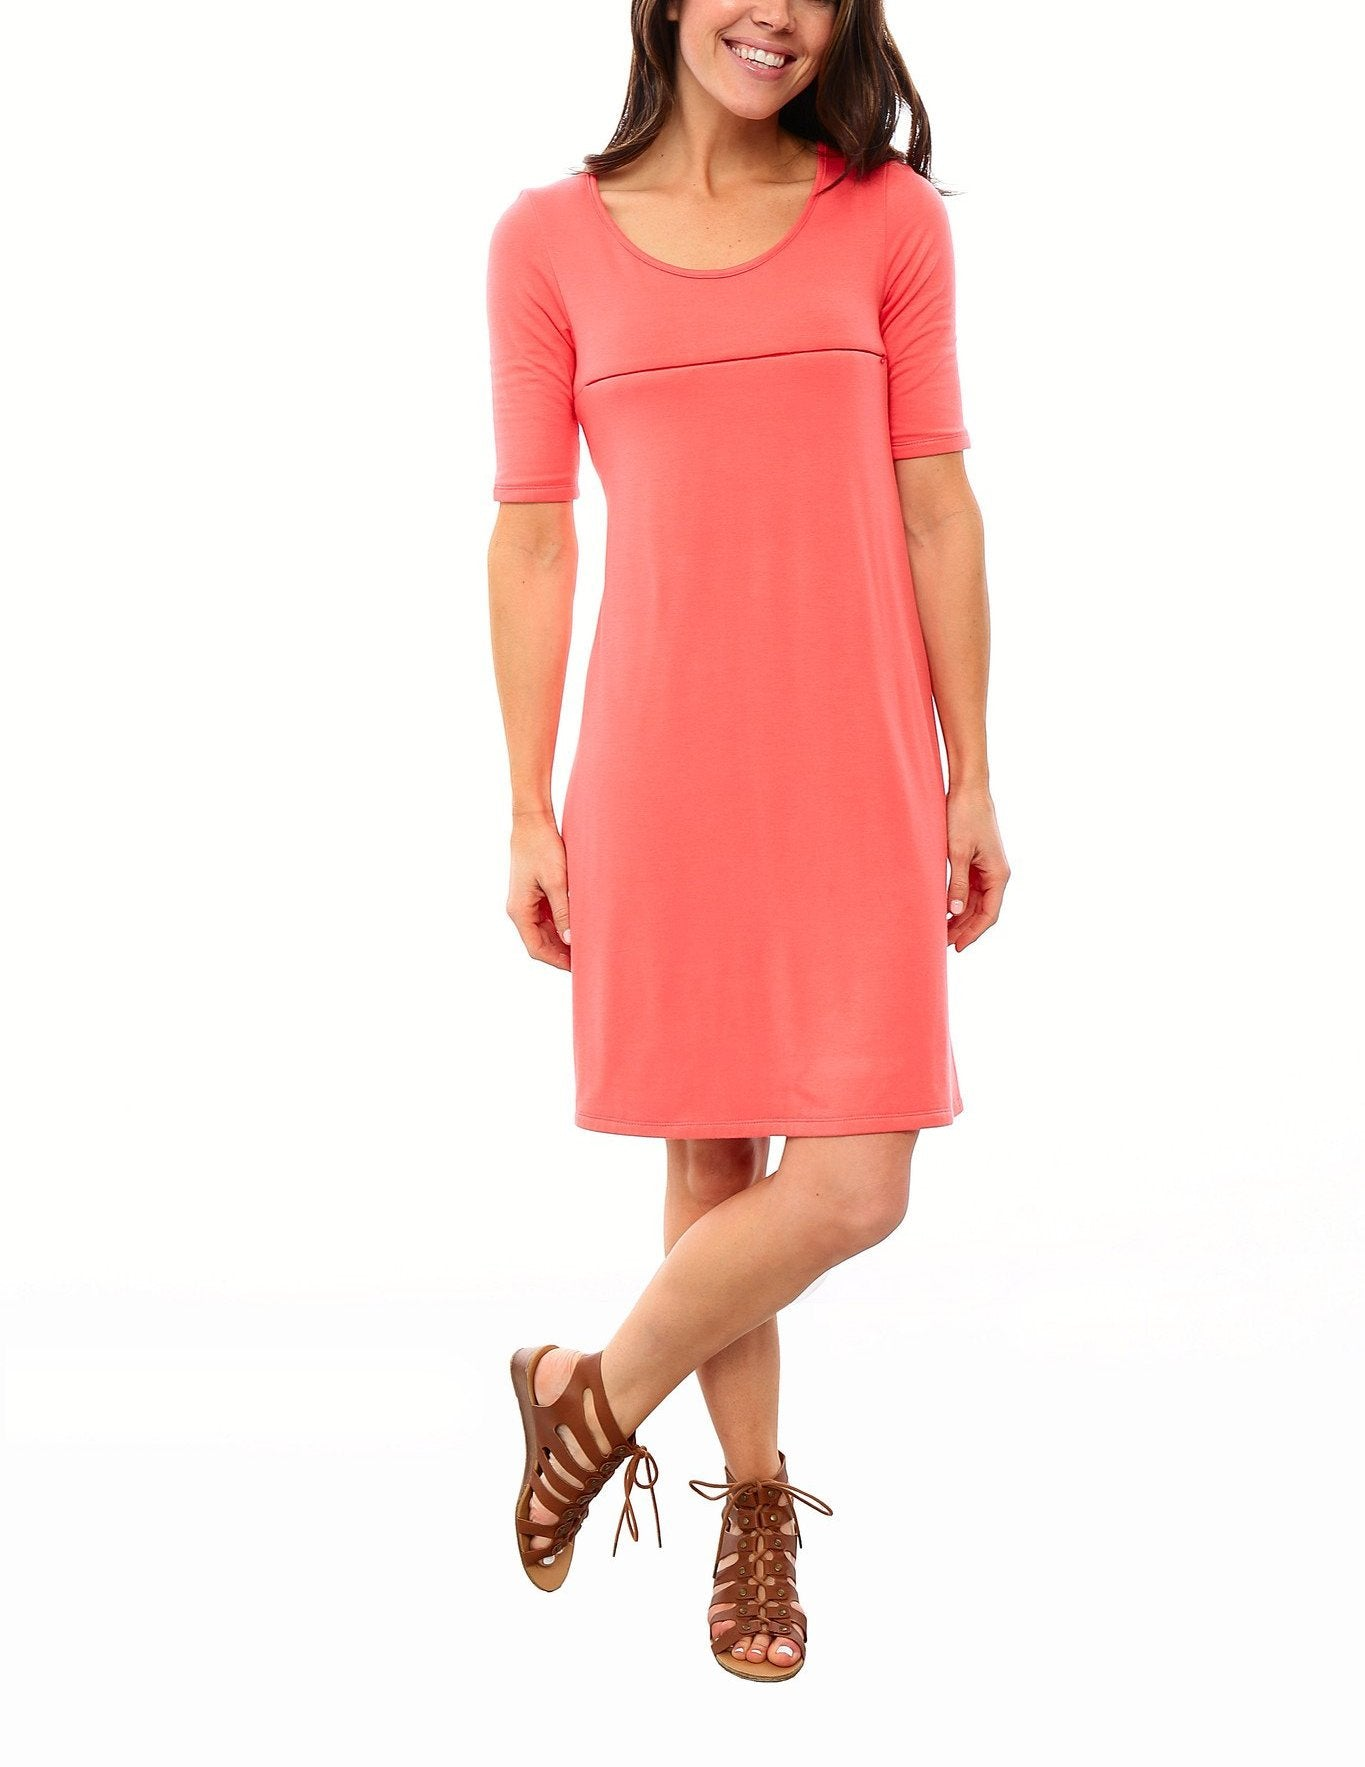 Shop Nursing Womens Clothing on sale at nazhatie-skachat.gq and find the best styles and deals right now! Free shipping available and free pickup in-store!